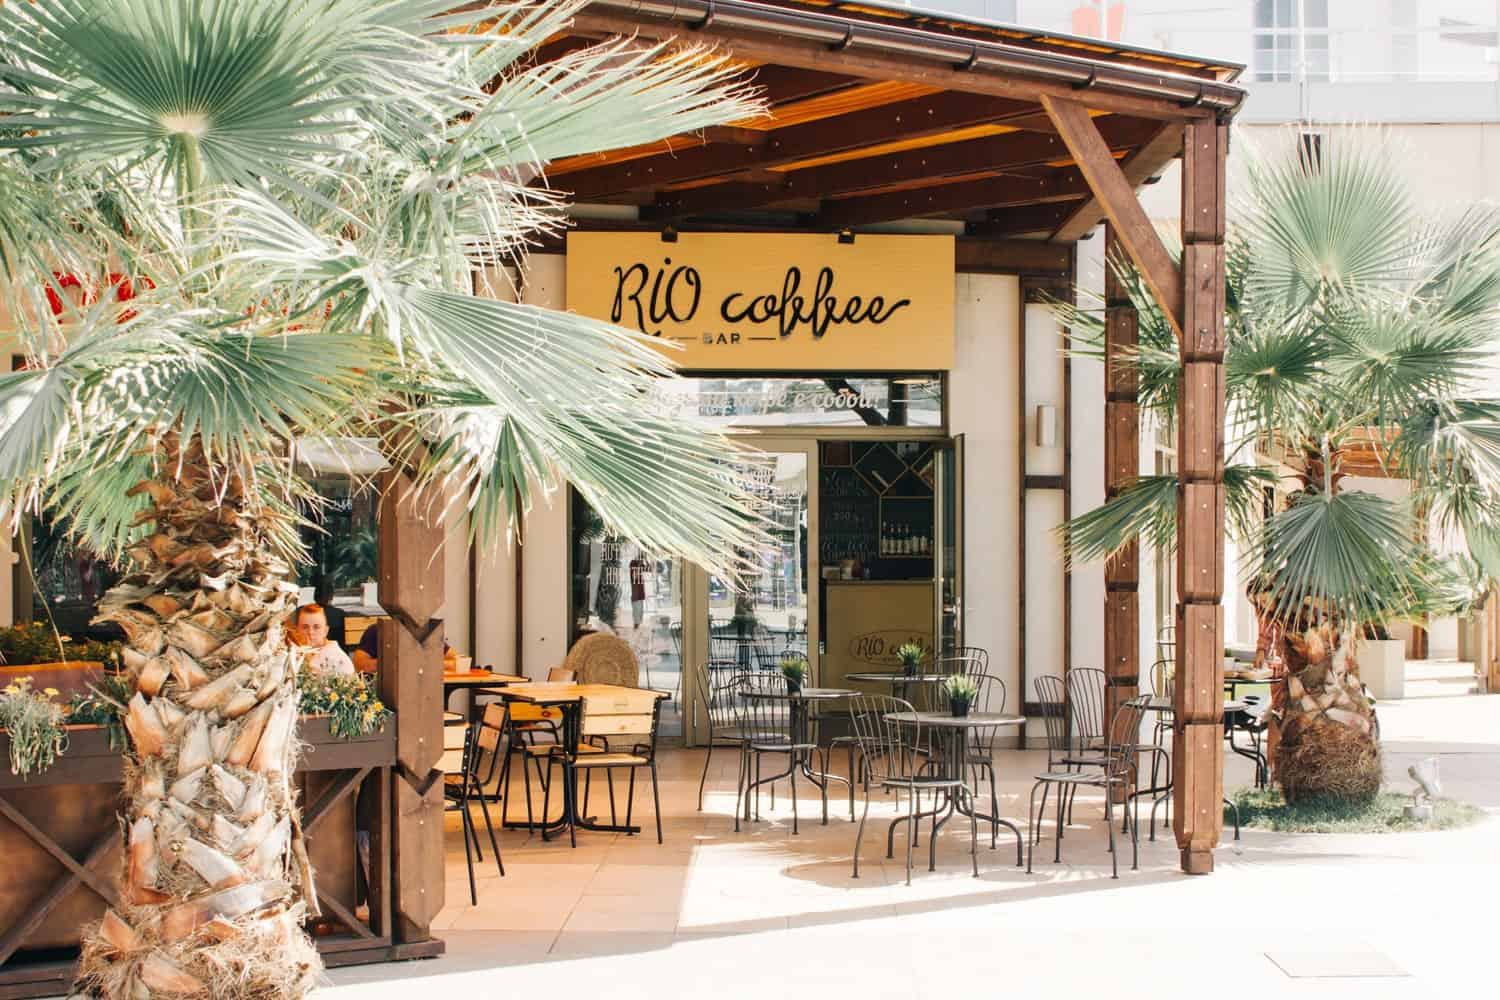 8 Tips to Consider When Starting a High-end Coffee Shop